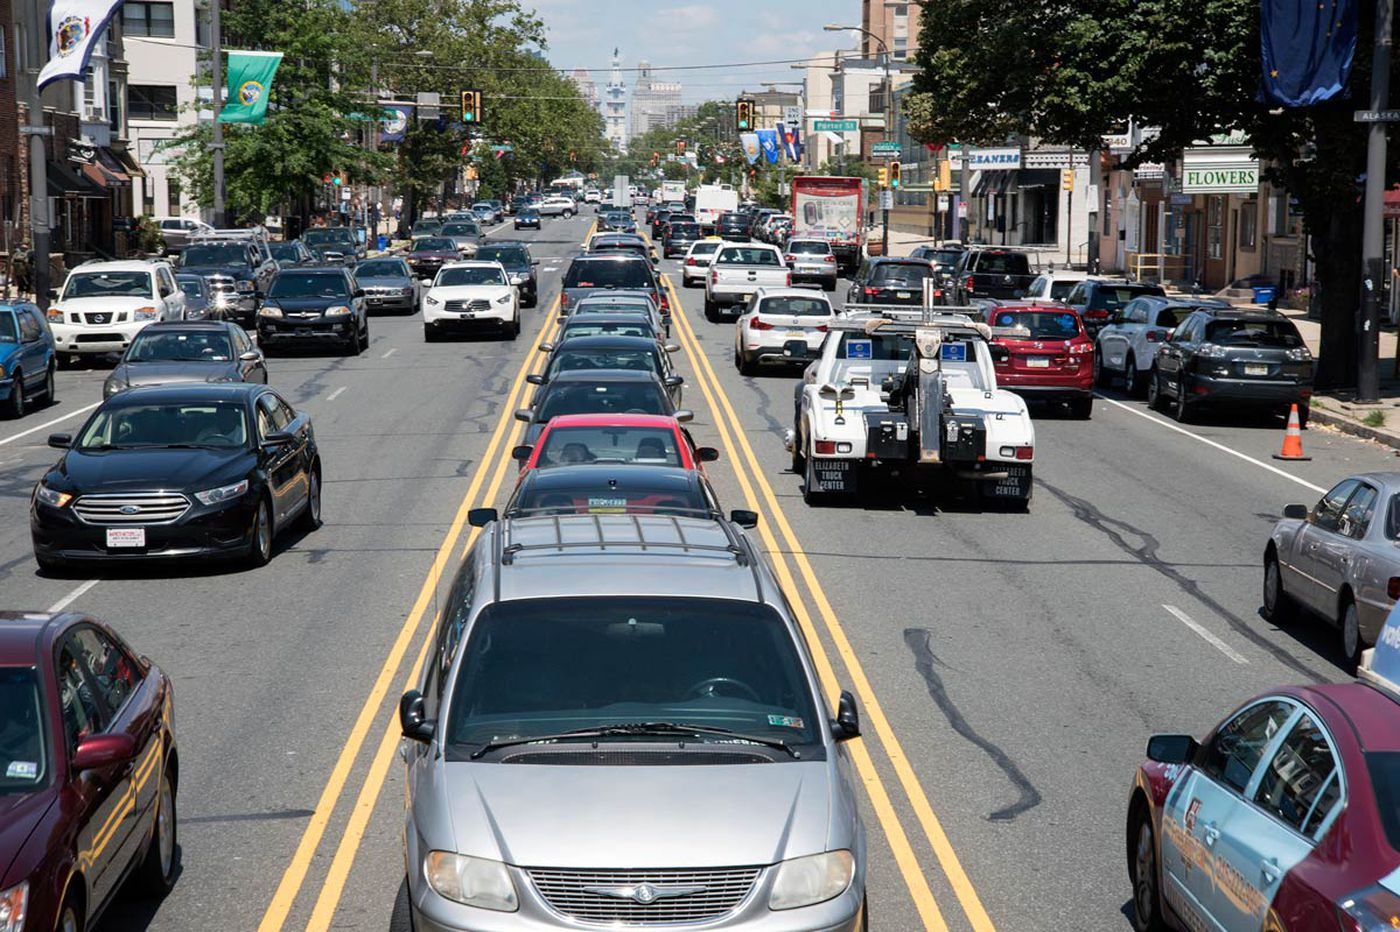 Will Philly finally get rid of the giant parking lot in the South Broad median?